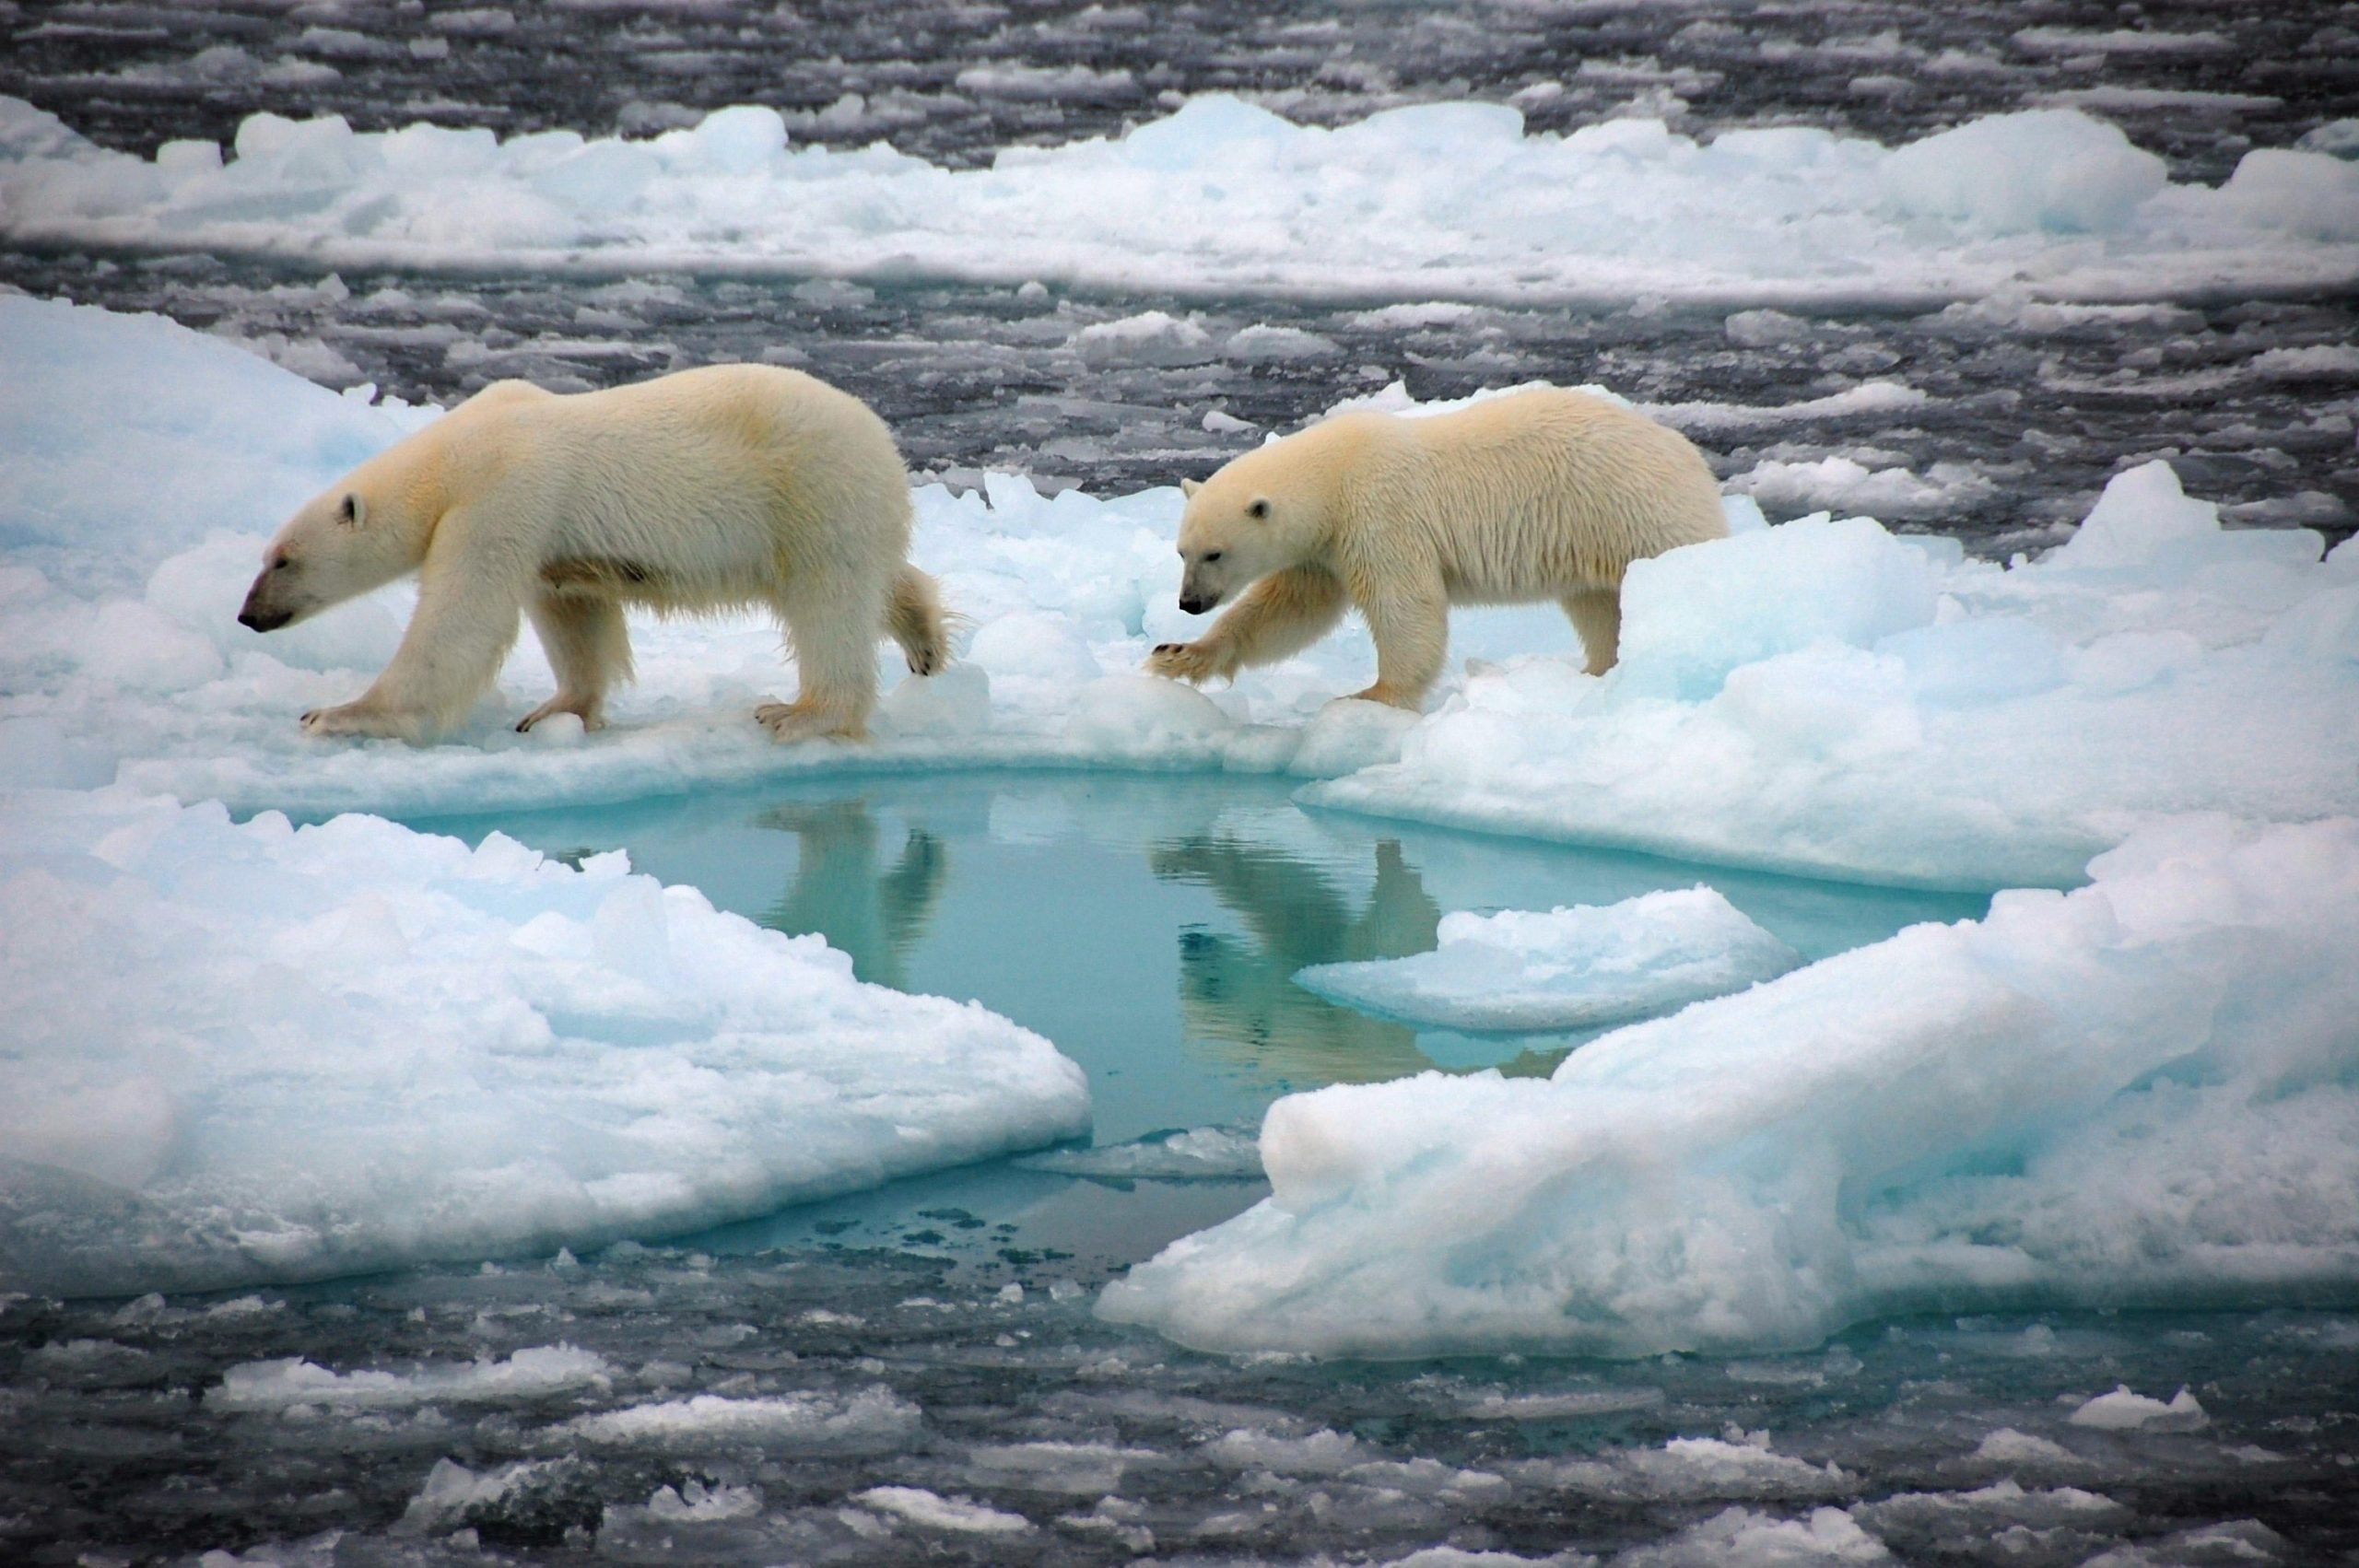 North pole soon to be ice free in summer, Researchers Say